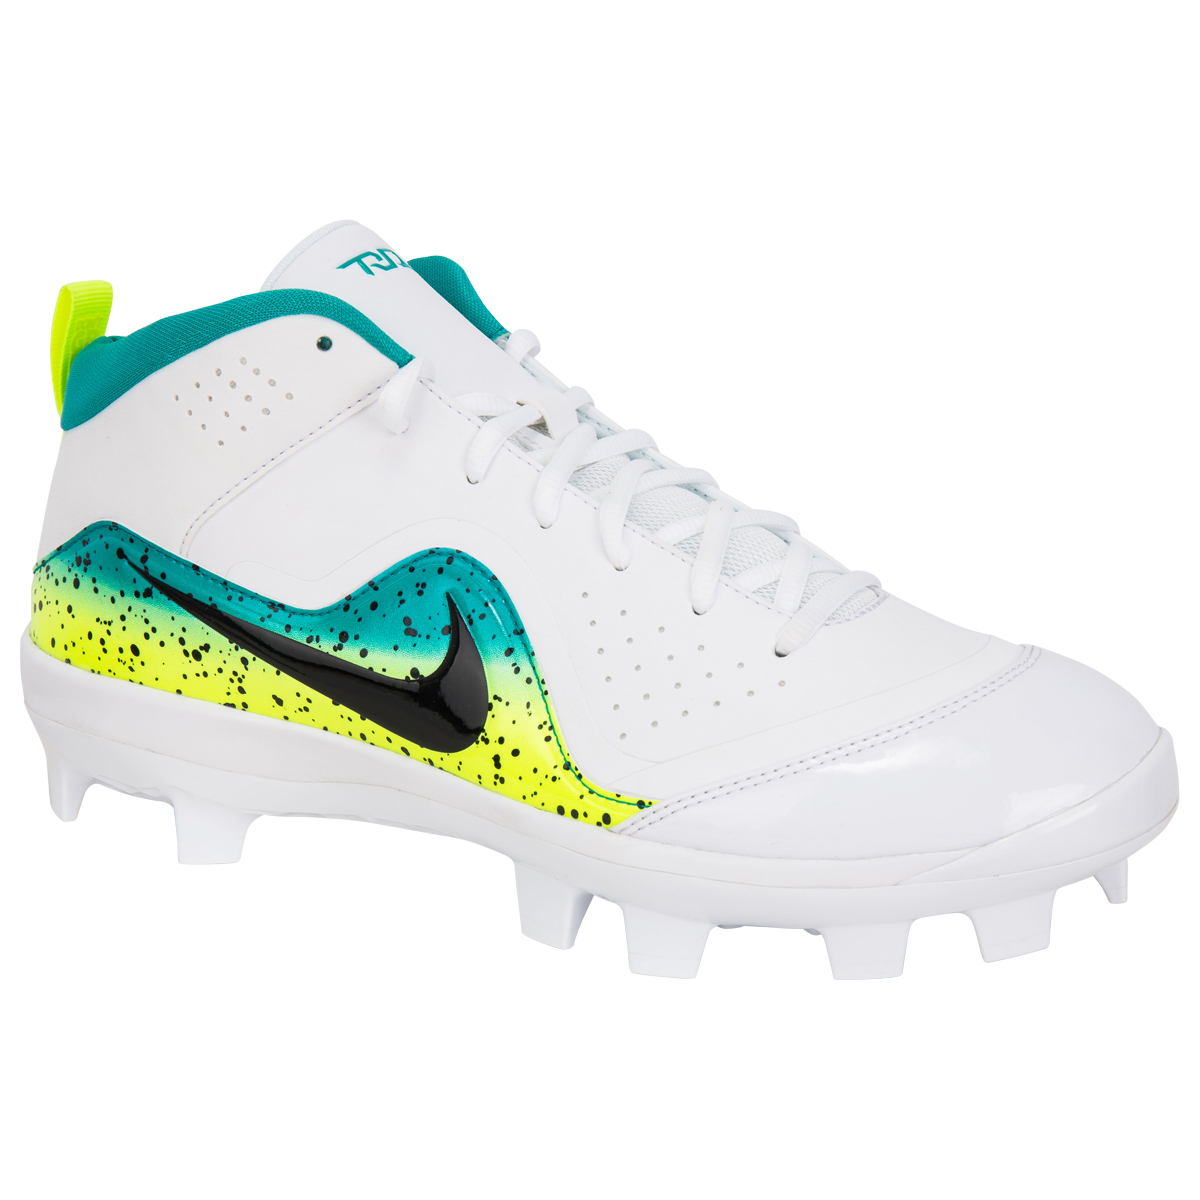 5ad48778eeff6 Inspired by Mike Trout s explosive speed and power  Men s Nike Trout Pro  MCS Baseball Cleat combines stability and breathability for peak  performance on ...